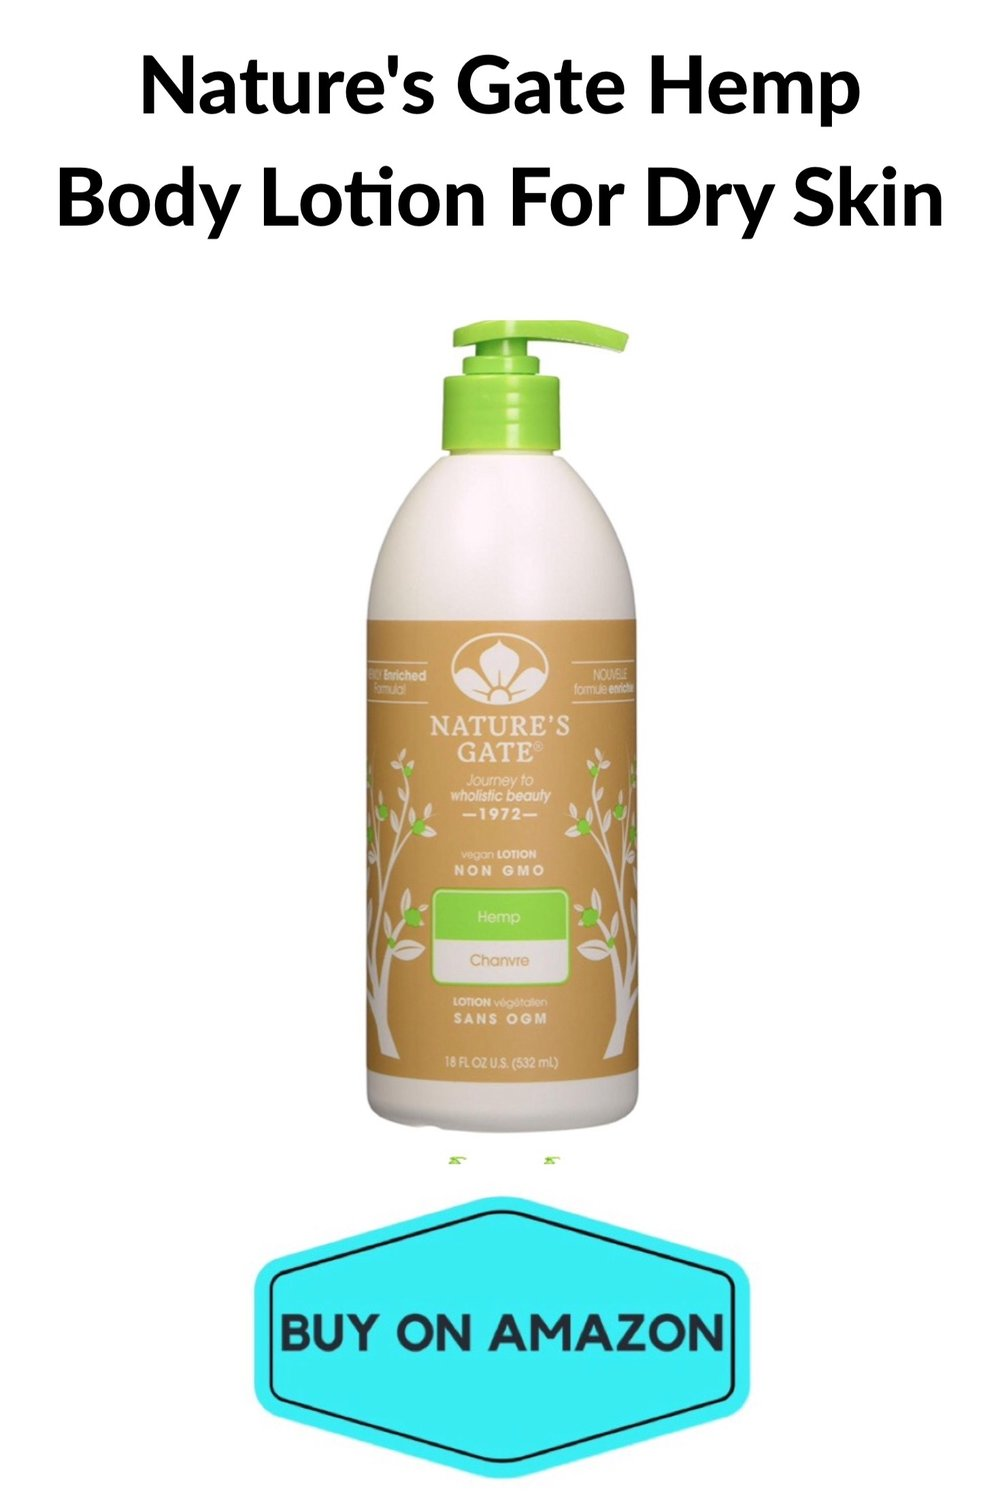 Nature's Gate Hemp Body Lotion For Dry Skin